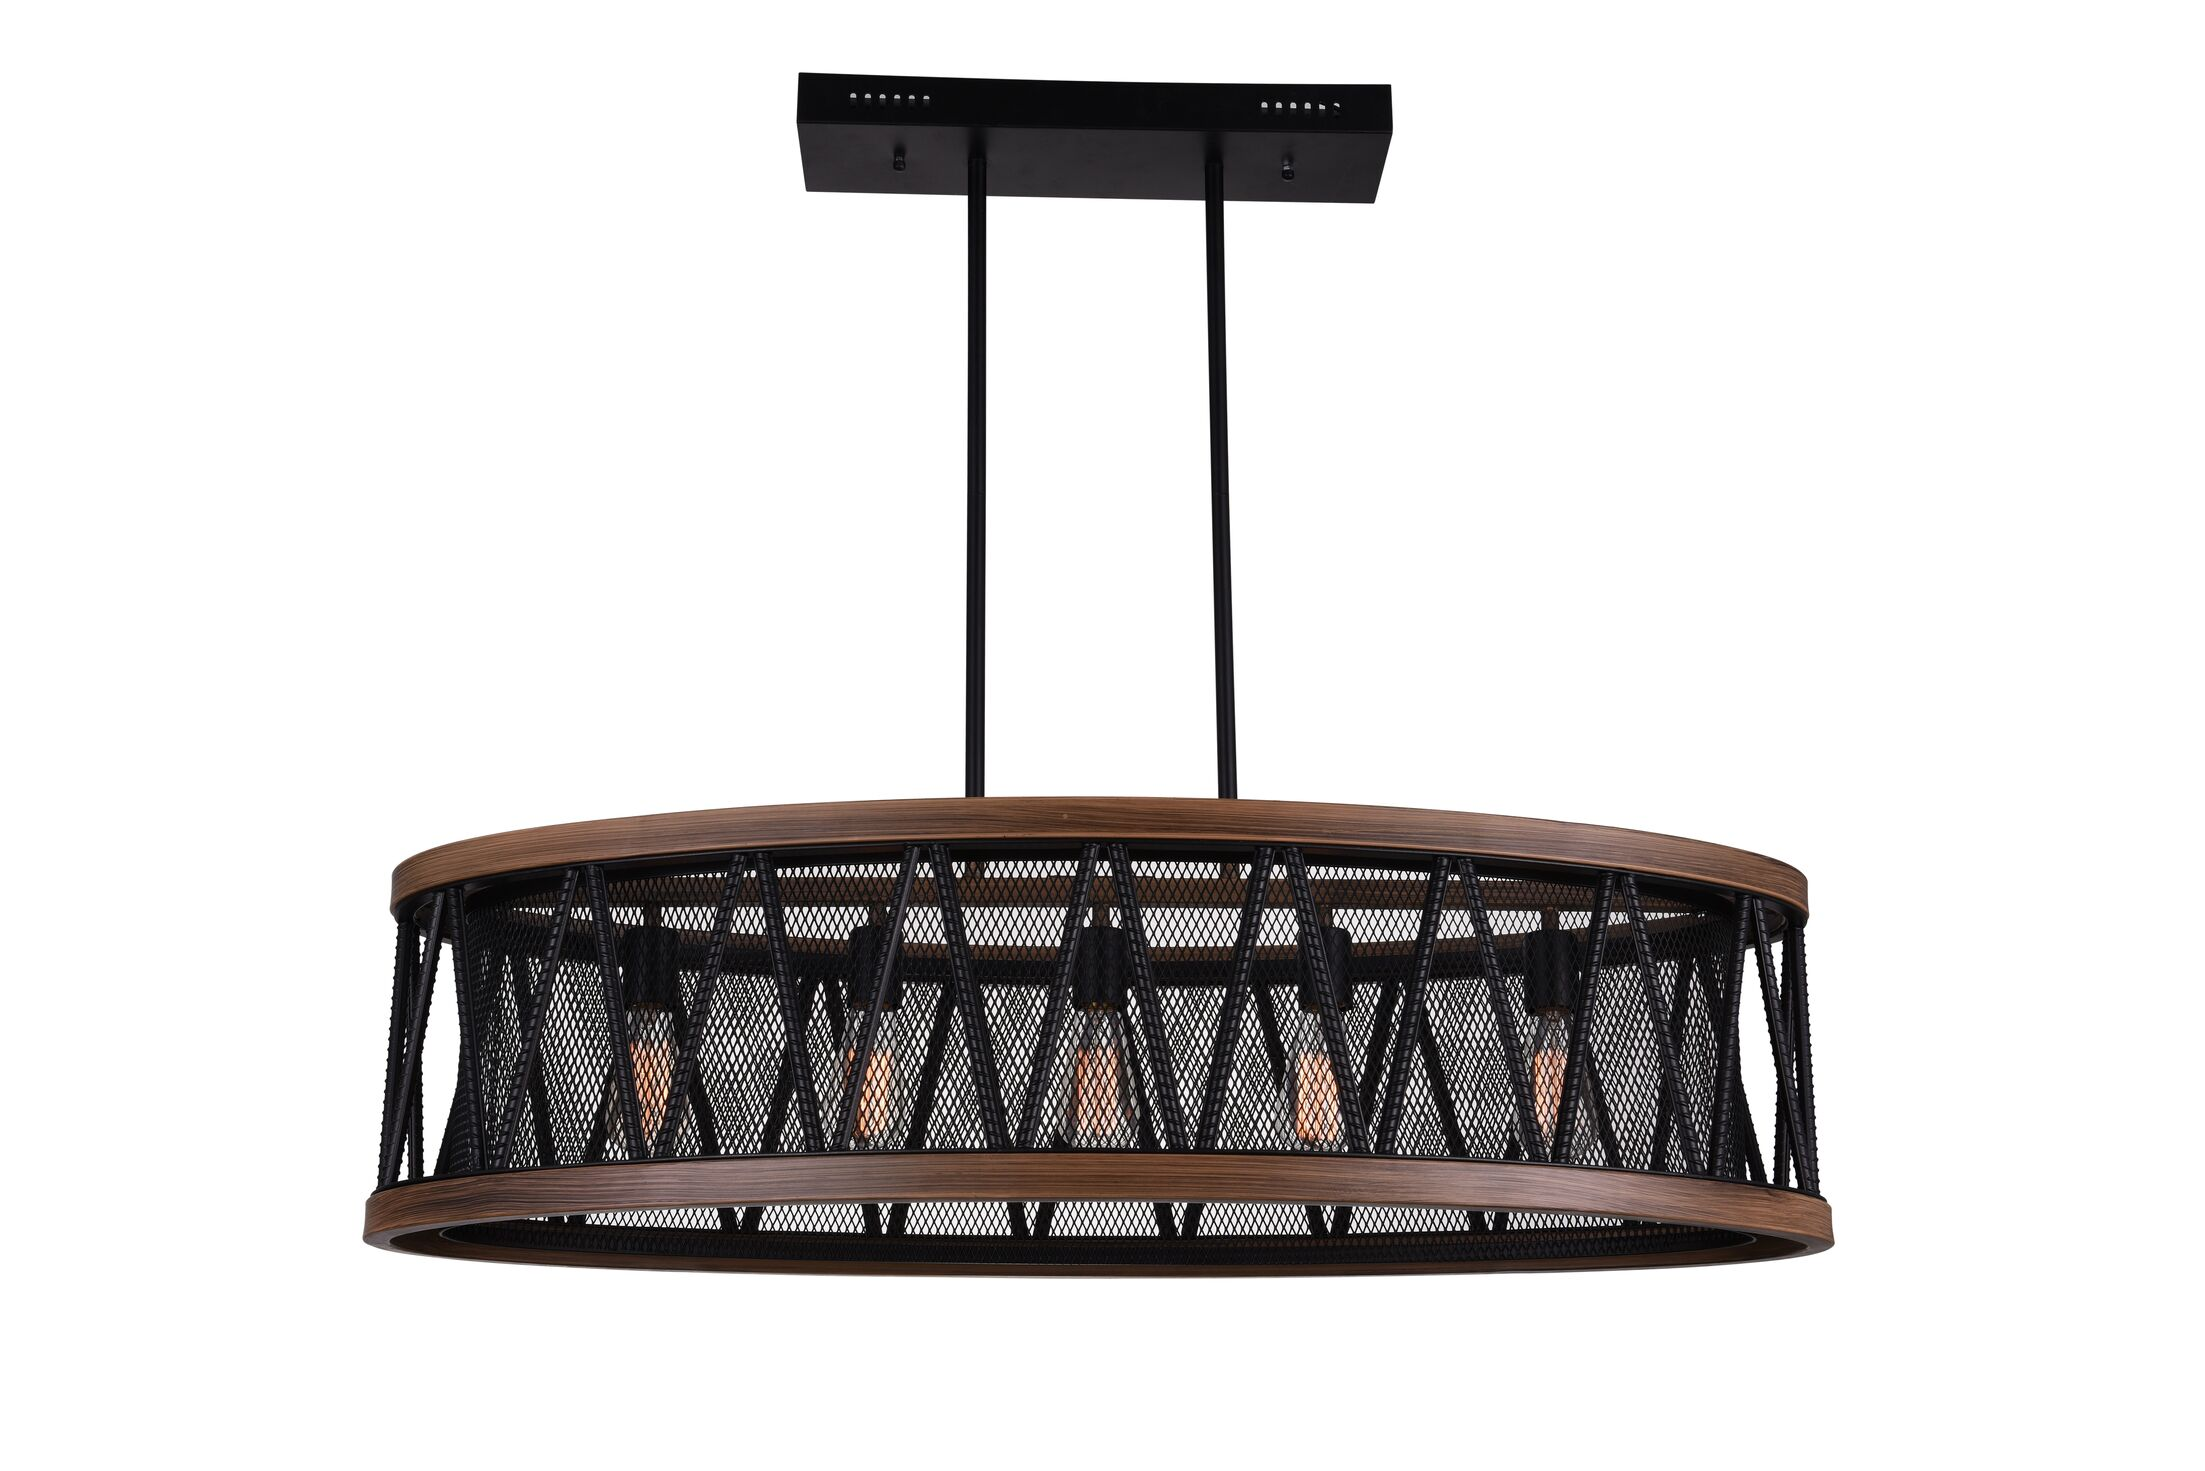 Parsh 5-Light LED Kitchen Island Chandelier